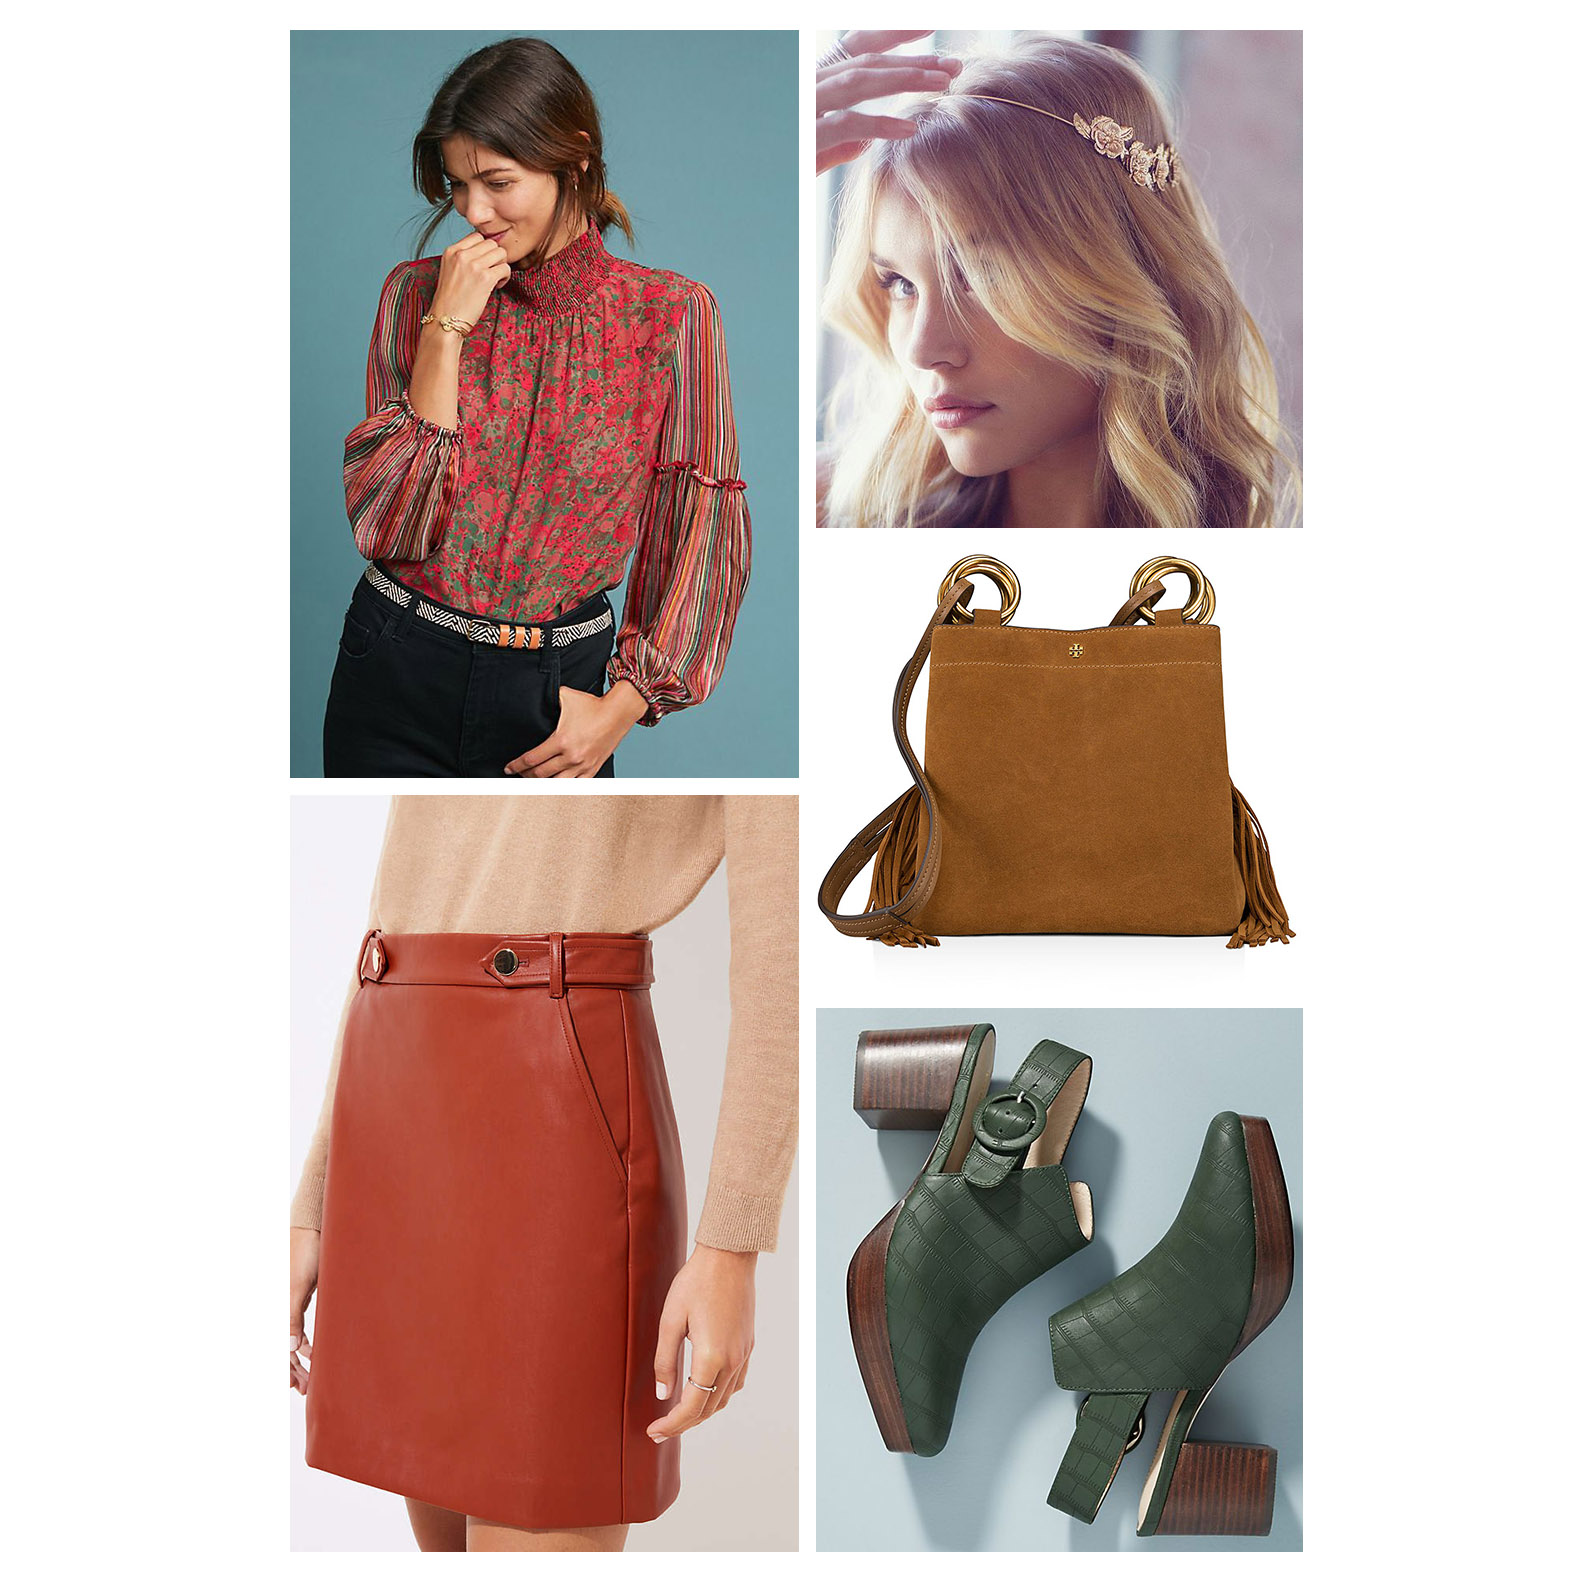 fall-autumn-outfit-dinner-2018-fashion-ideas-orange-mini-skirt-leather-red-peasant-top-gold-head-wrap-floral-print-green-clogs-heels-cognac-bag-night-date.jpg